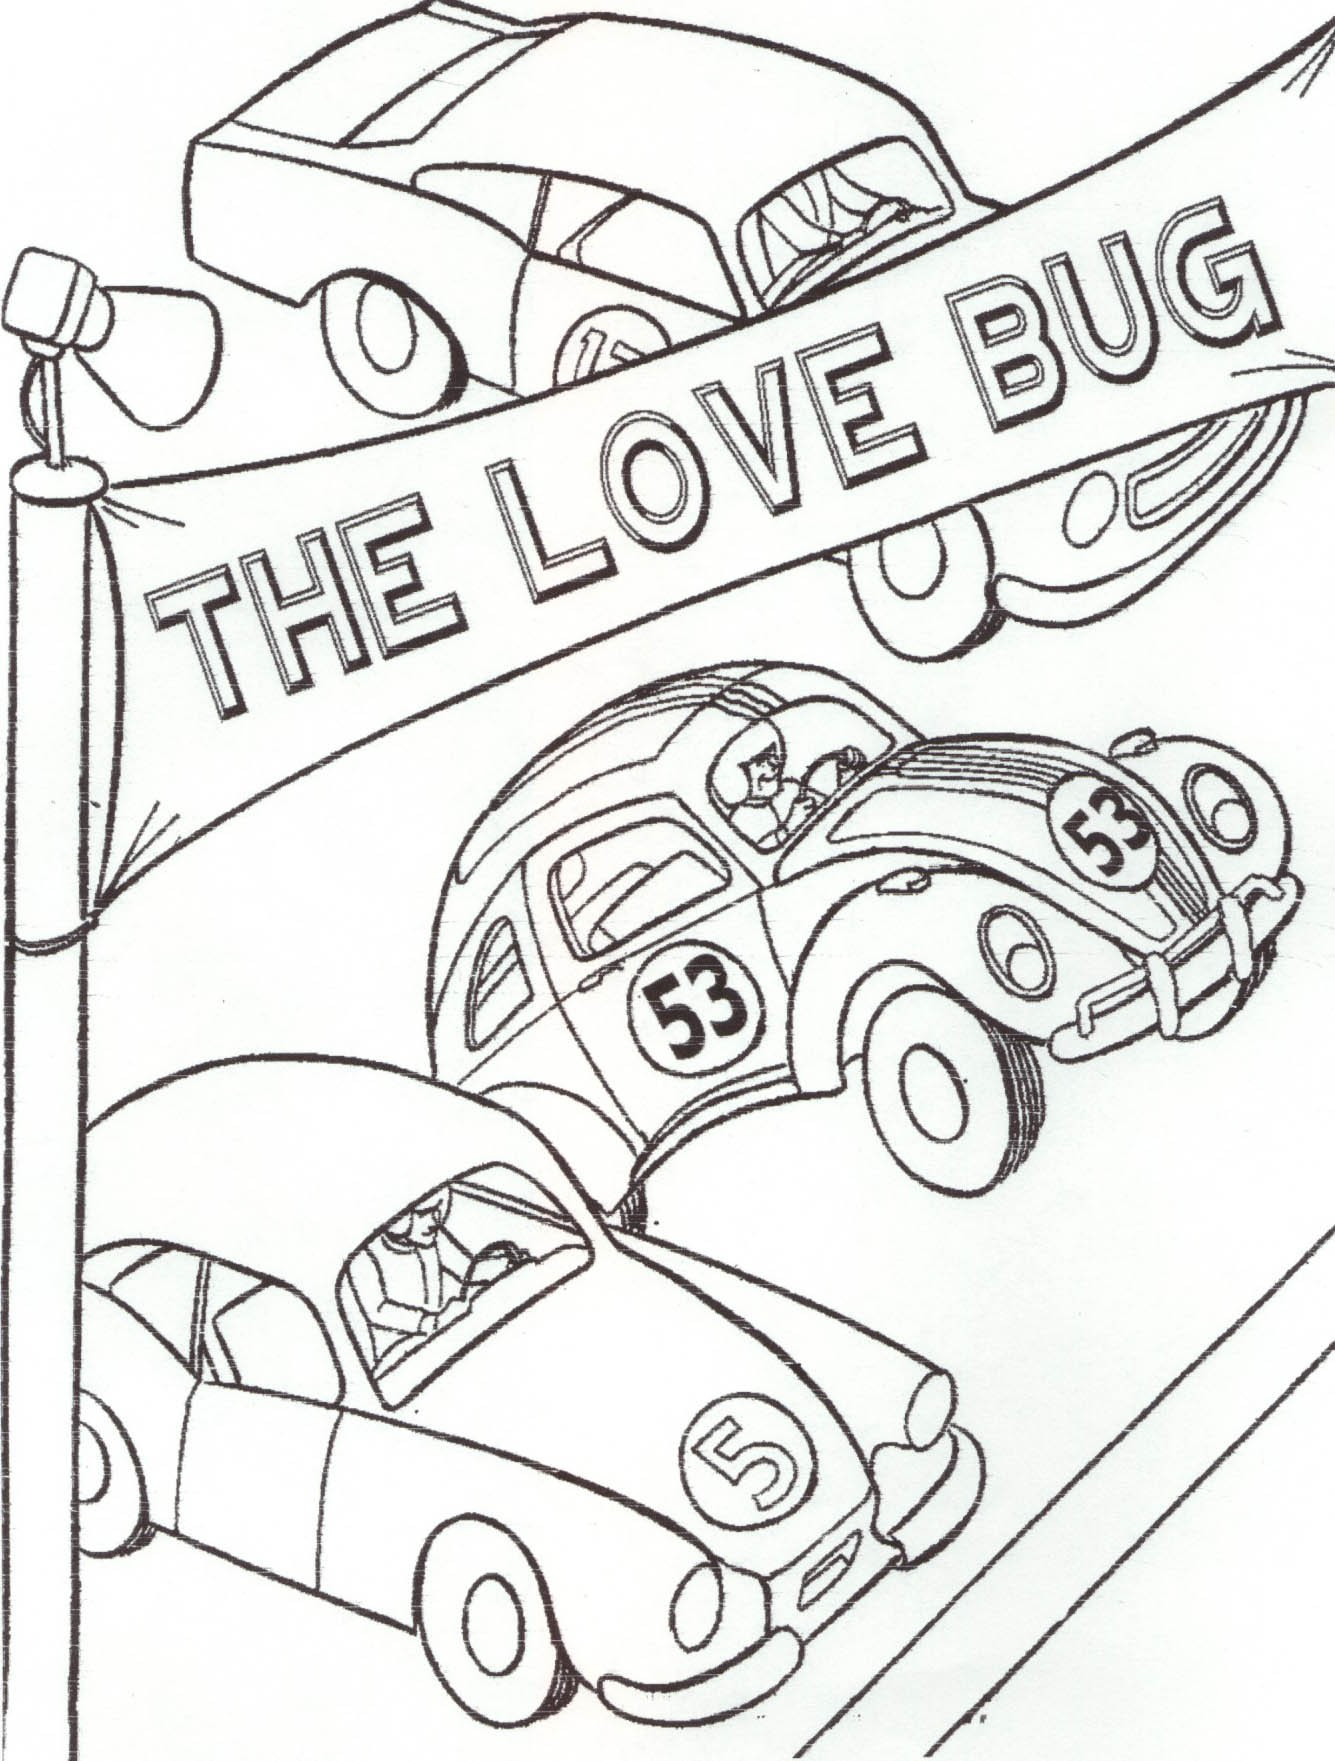 Vw Beetle Drawing At Free For Personal Use 1973 Fuse Box 1335x1761 Coloring Pages New 2017 Volkswagen Dune